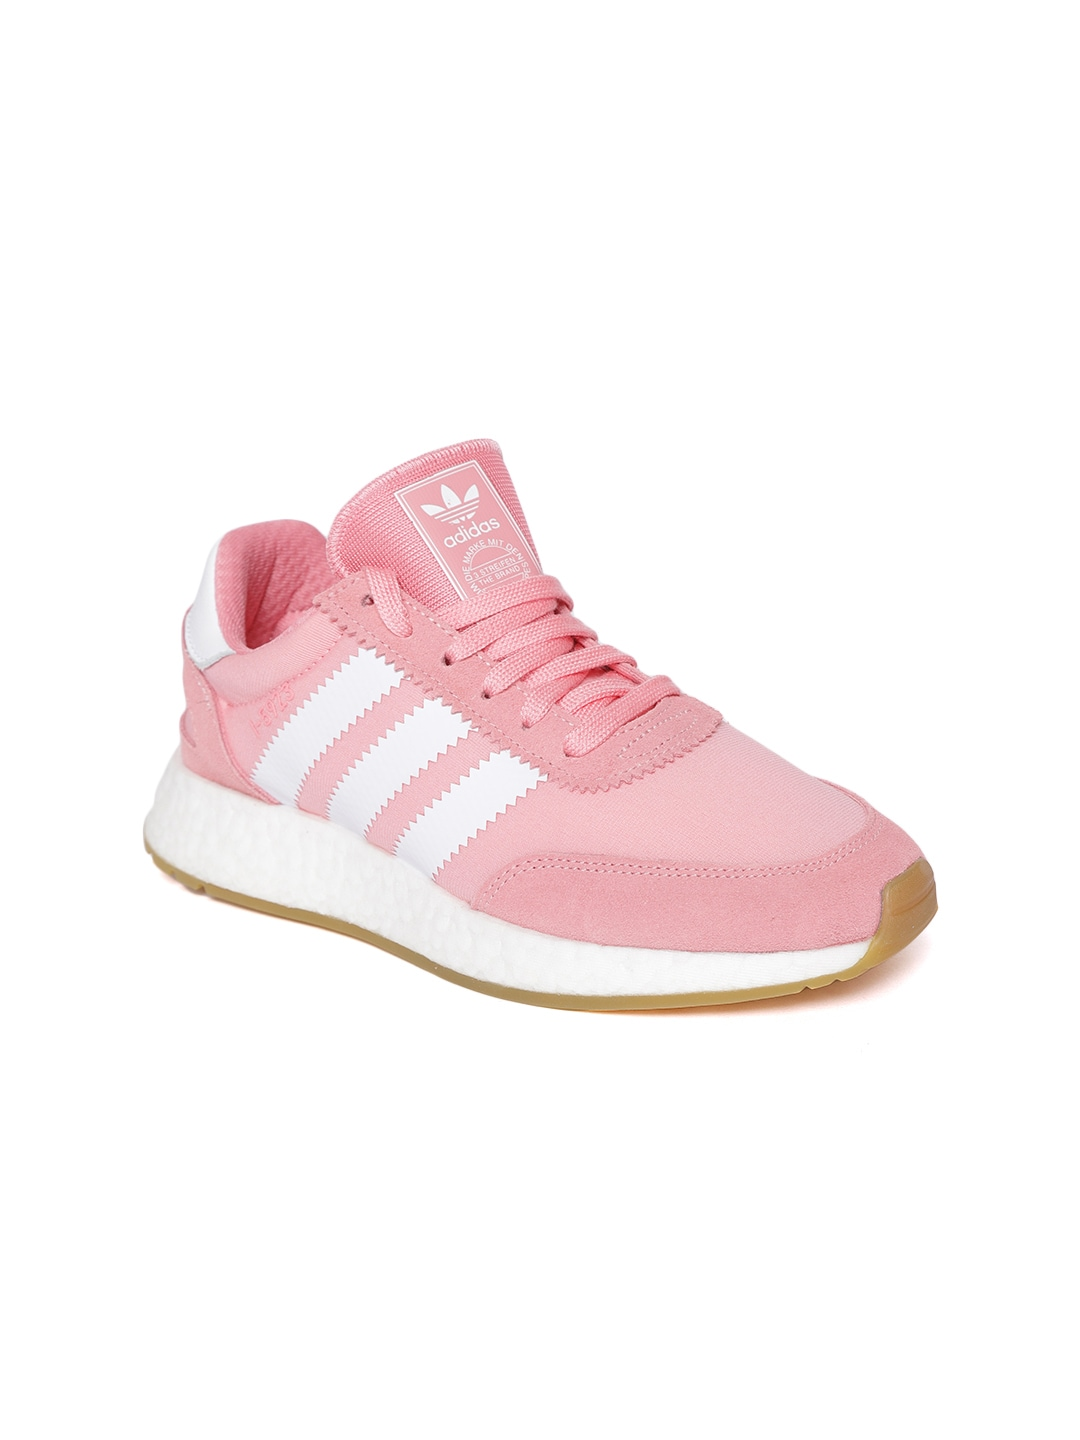 509d31b5ee9c Adidas Pink Shoes - Buy Adidas Pink Shoes online in India